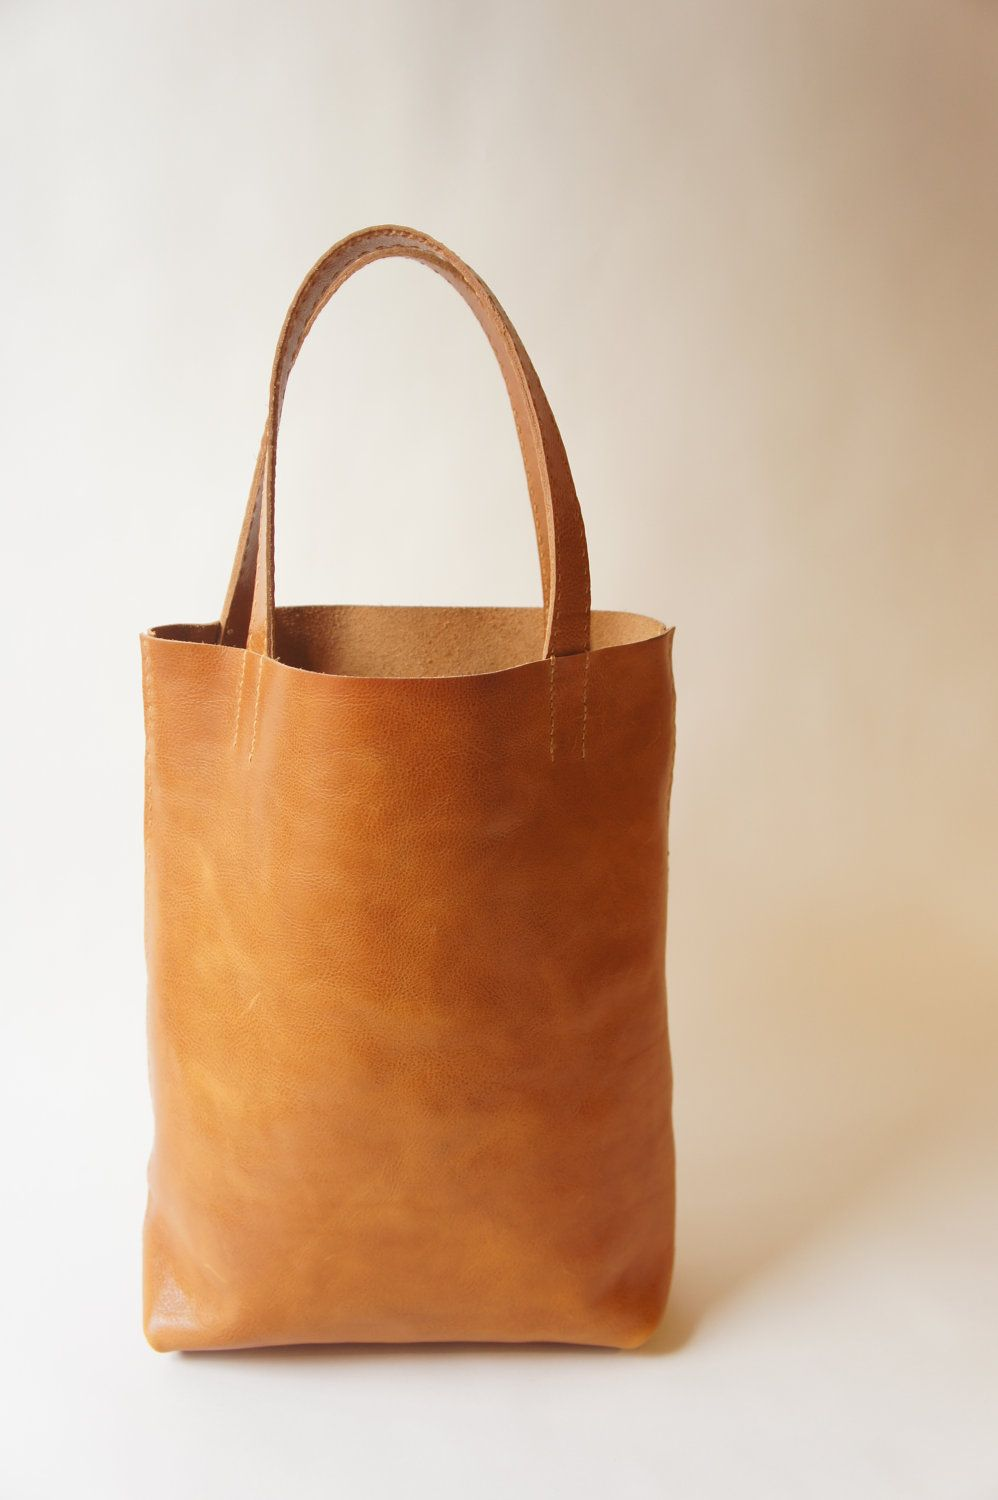 Simple Leather Tote - Cognac | Leather totes and Leather